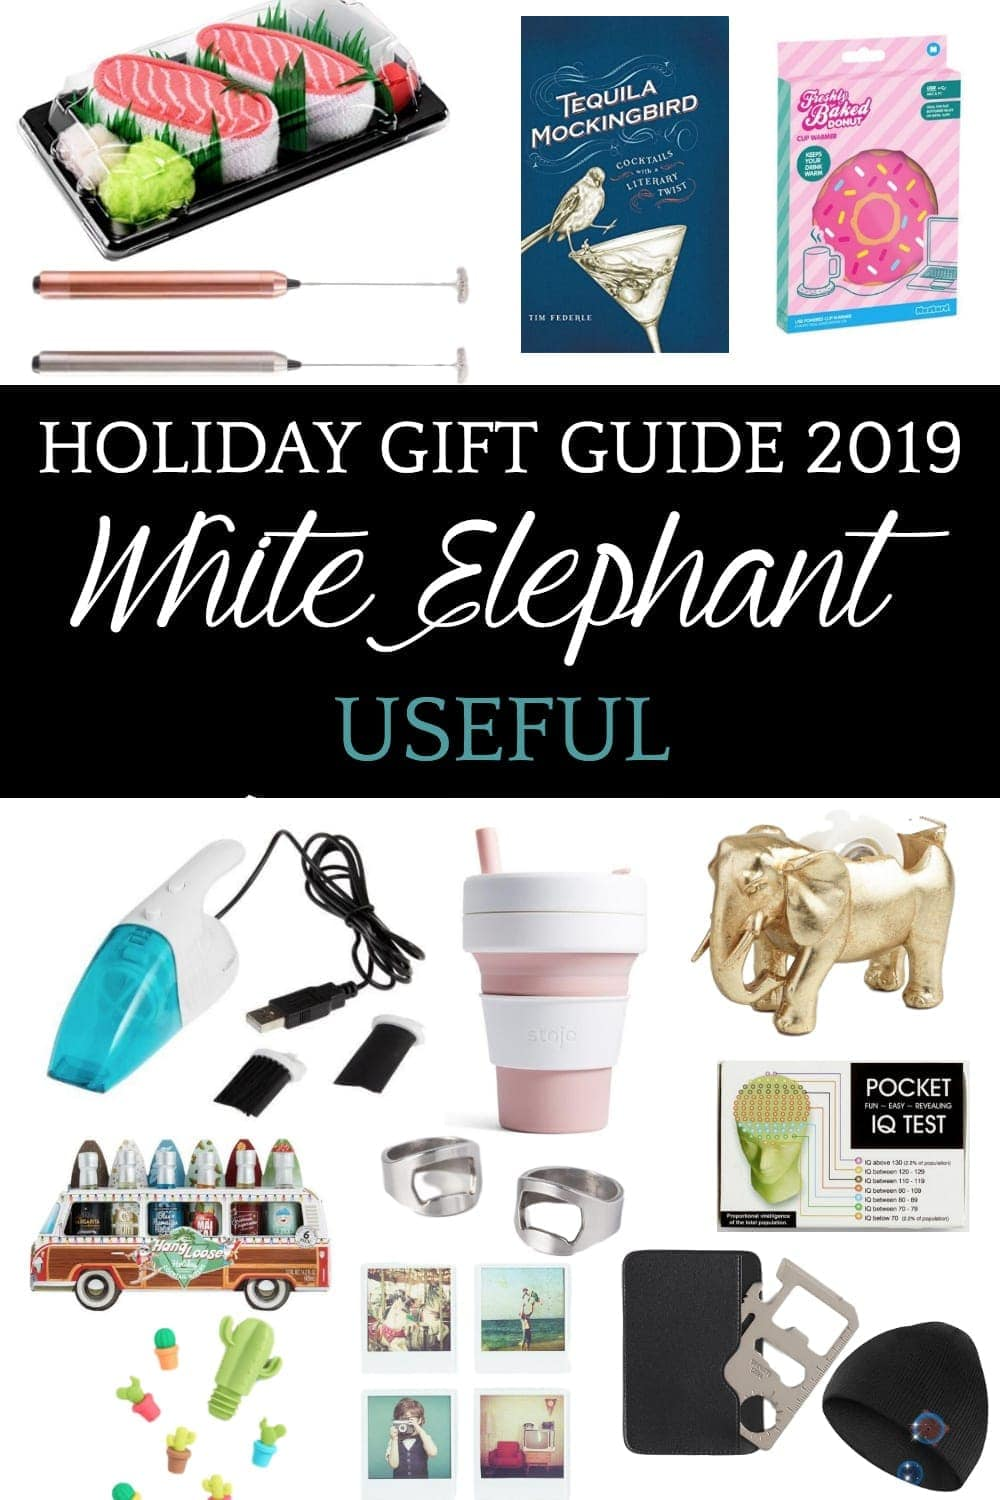 White Elephant Gift Ideas | 40 white elephant gift ideas that are hilarious, useful, or for kids to make your next Christmas party a hit. #whiteelephantgifts